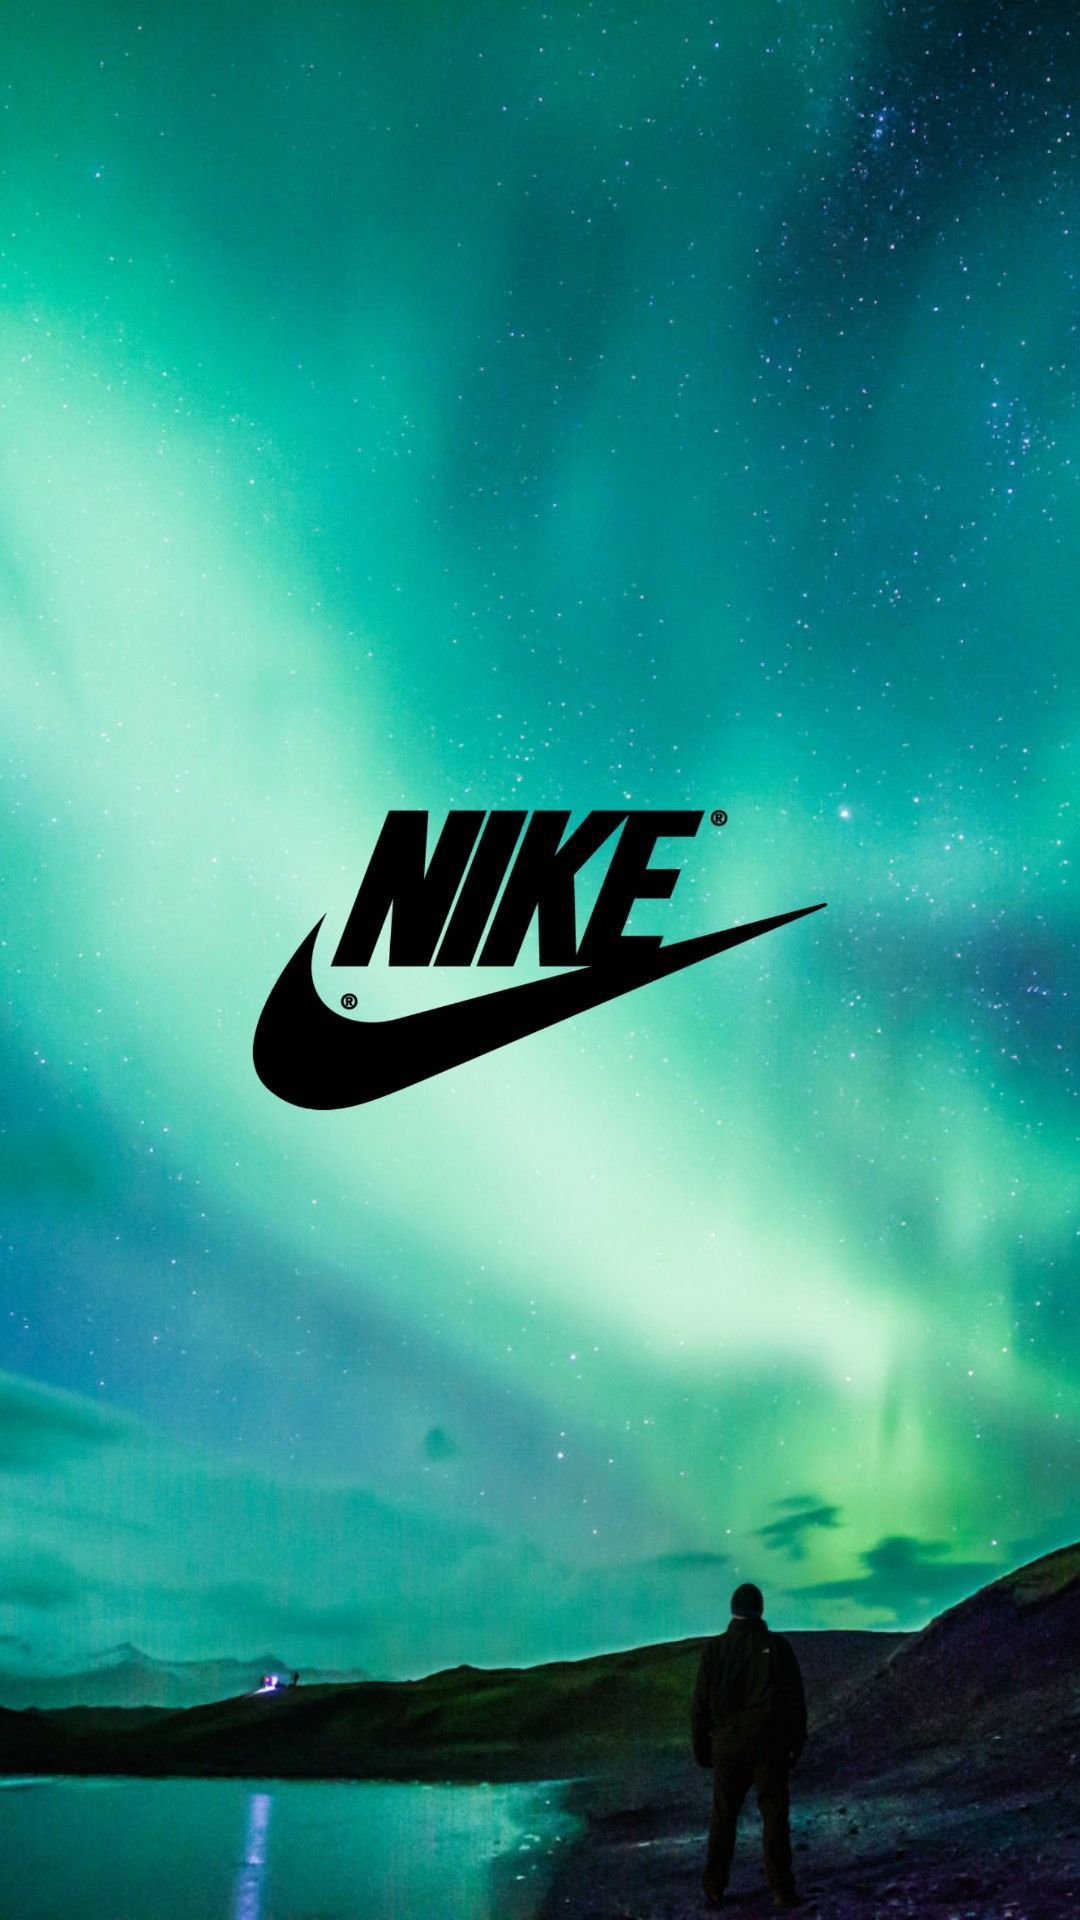 Charming Brand Mobile Wallpapers 4K in 2020 Nike